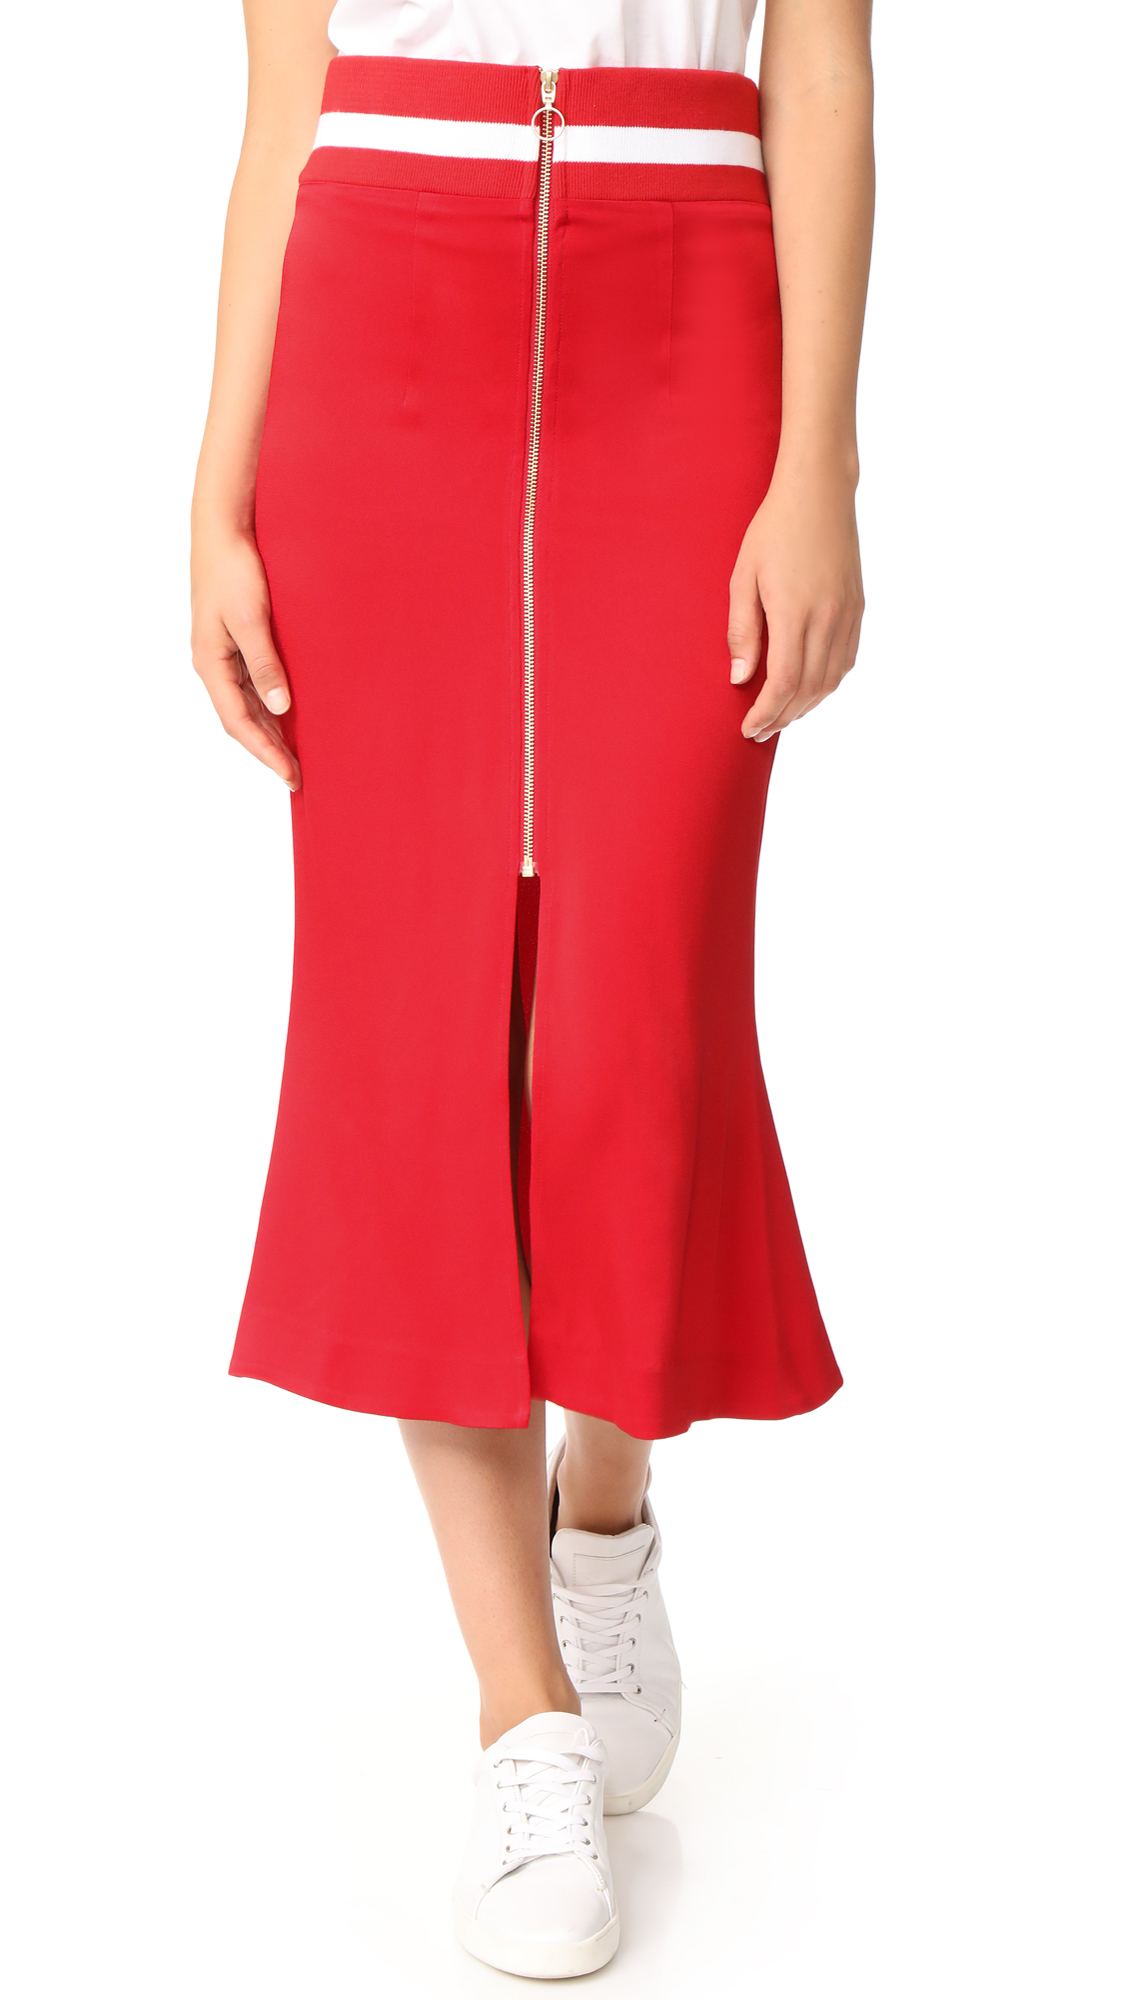 Maggie Marilyn Focus on the Good Skirt - Red